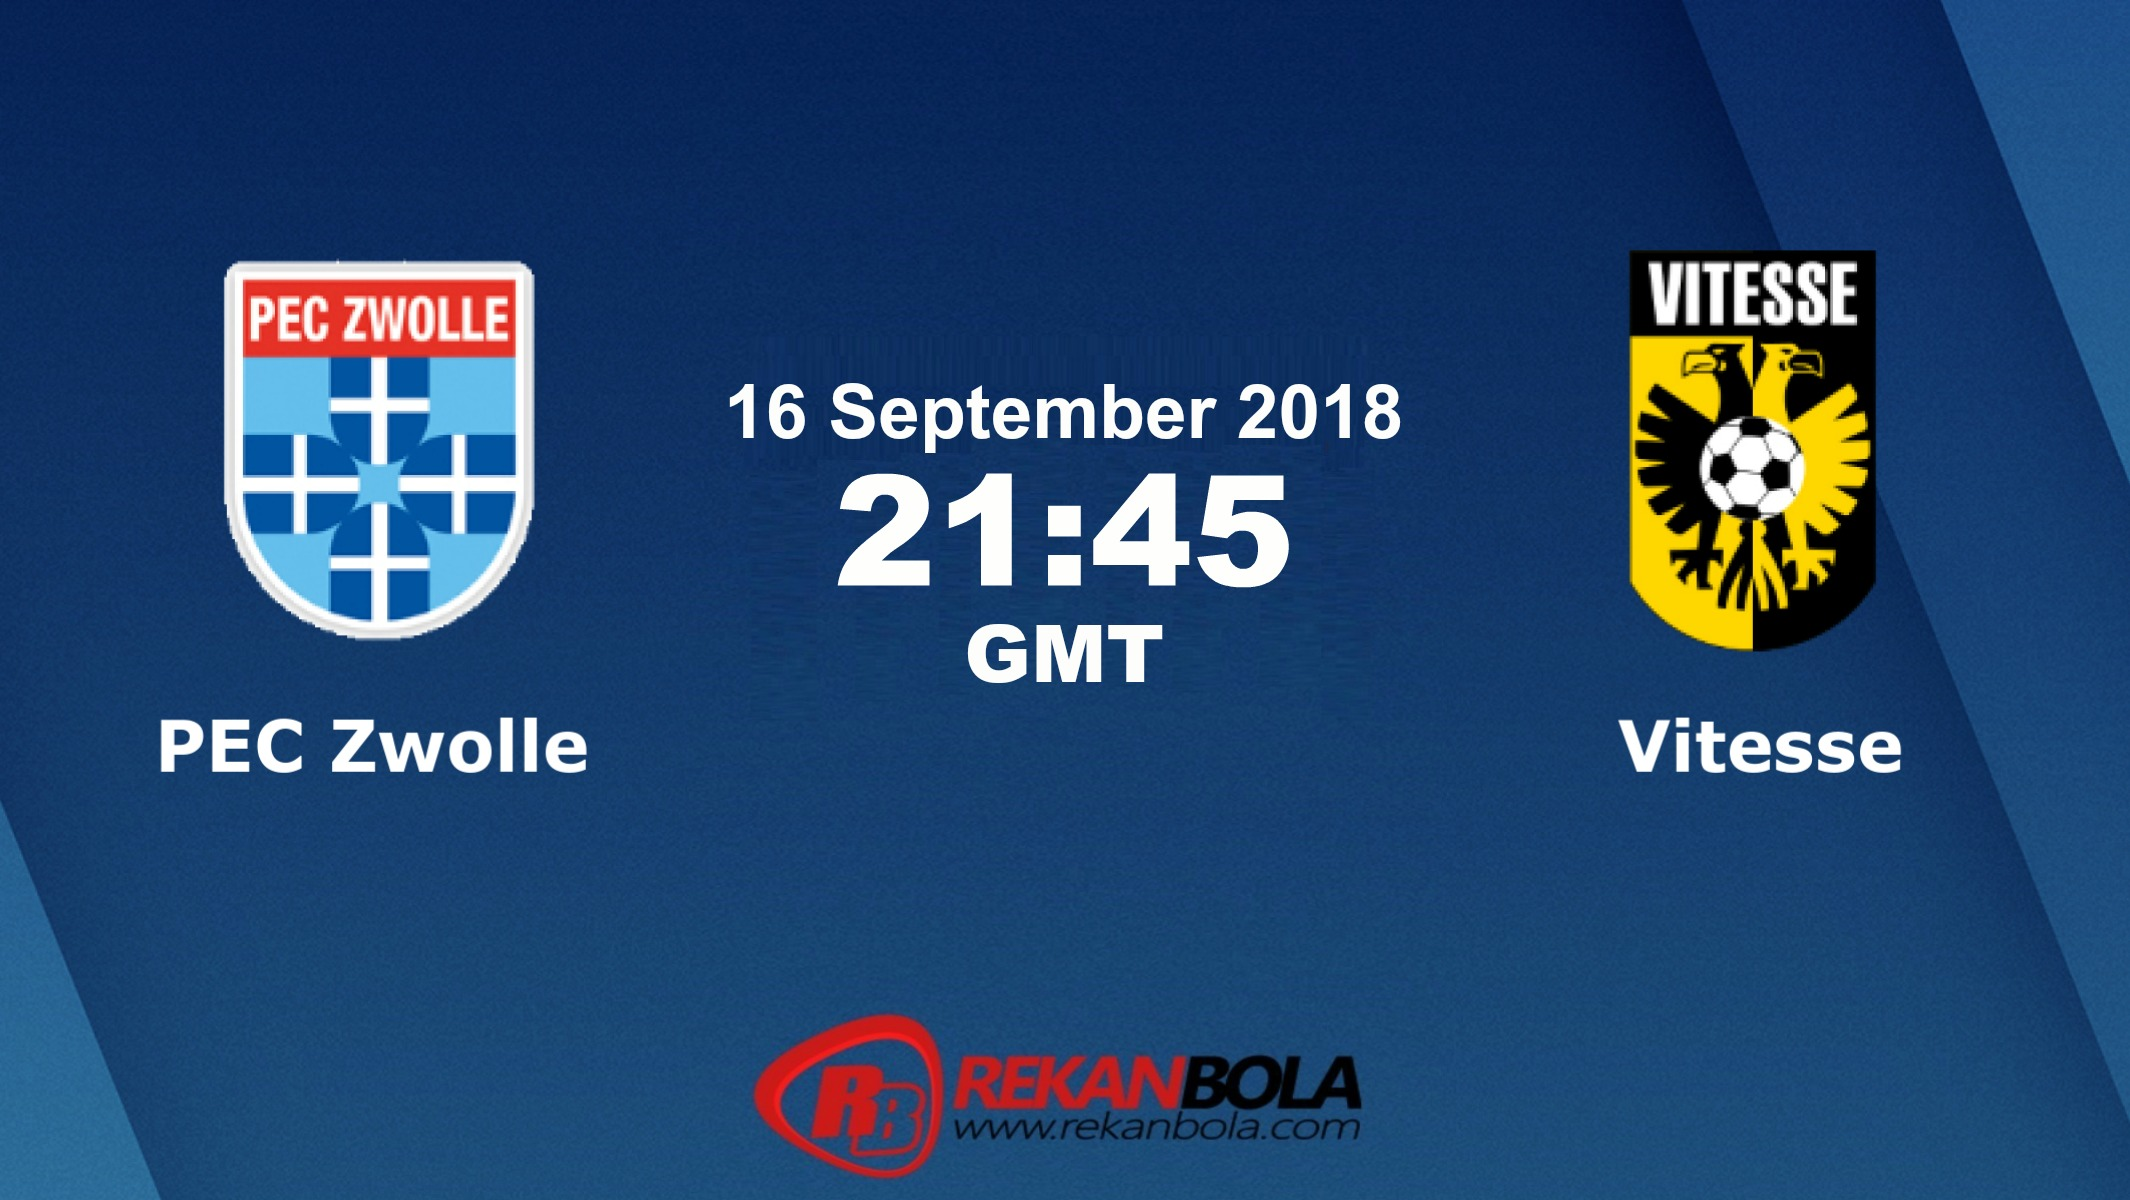 Nonton Siaran Live Streaming Zwolle Vs Vitesse 16 September 2018